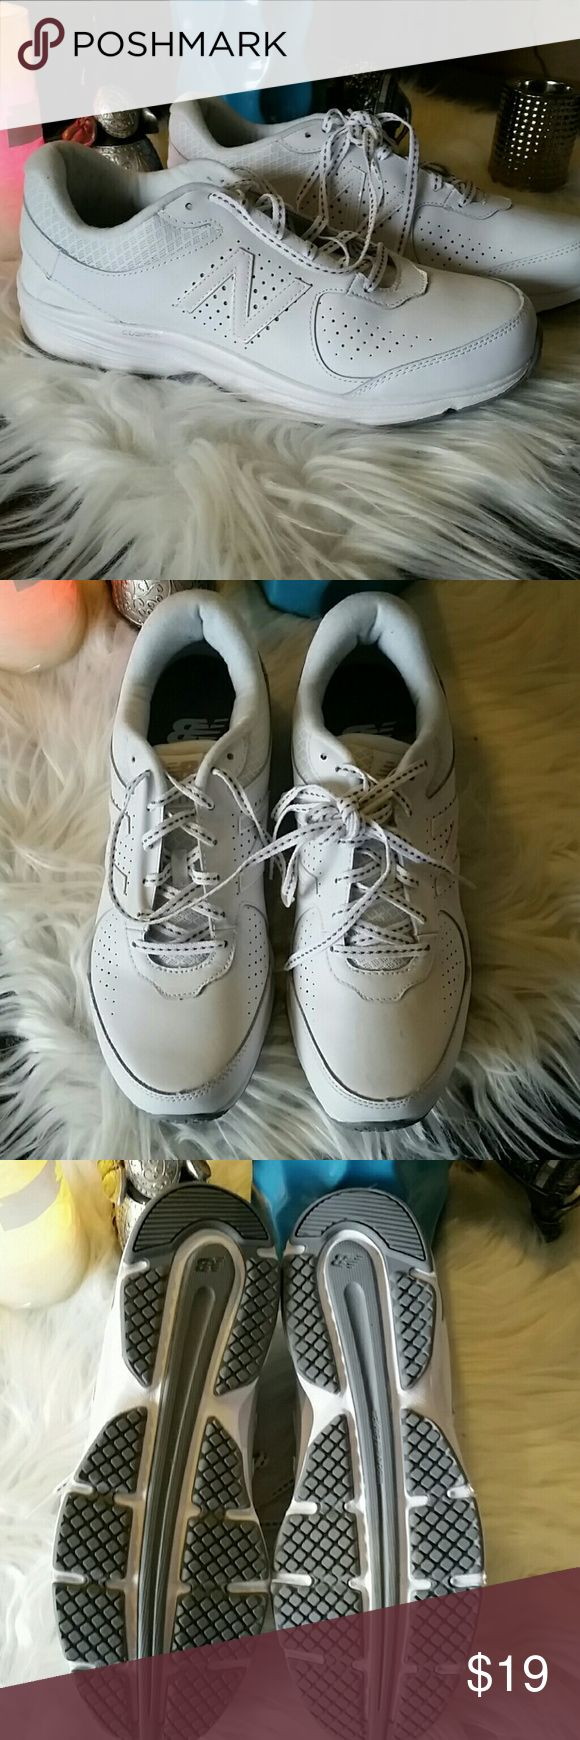 New Balance Running shoes size 9 Items were store display merchandise, might have signs of being exposed to customers, overall excellent condition. Size 9 Brand : New Balance New Balance Shoes Sneakers